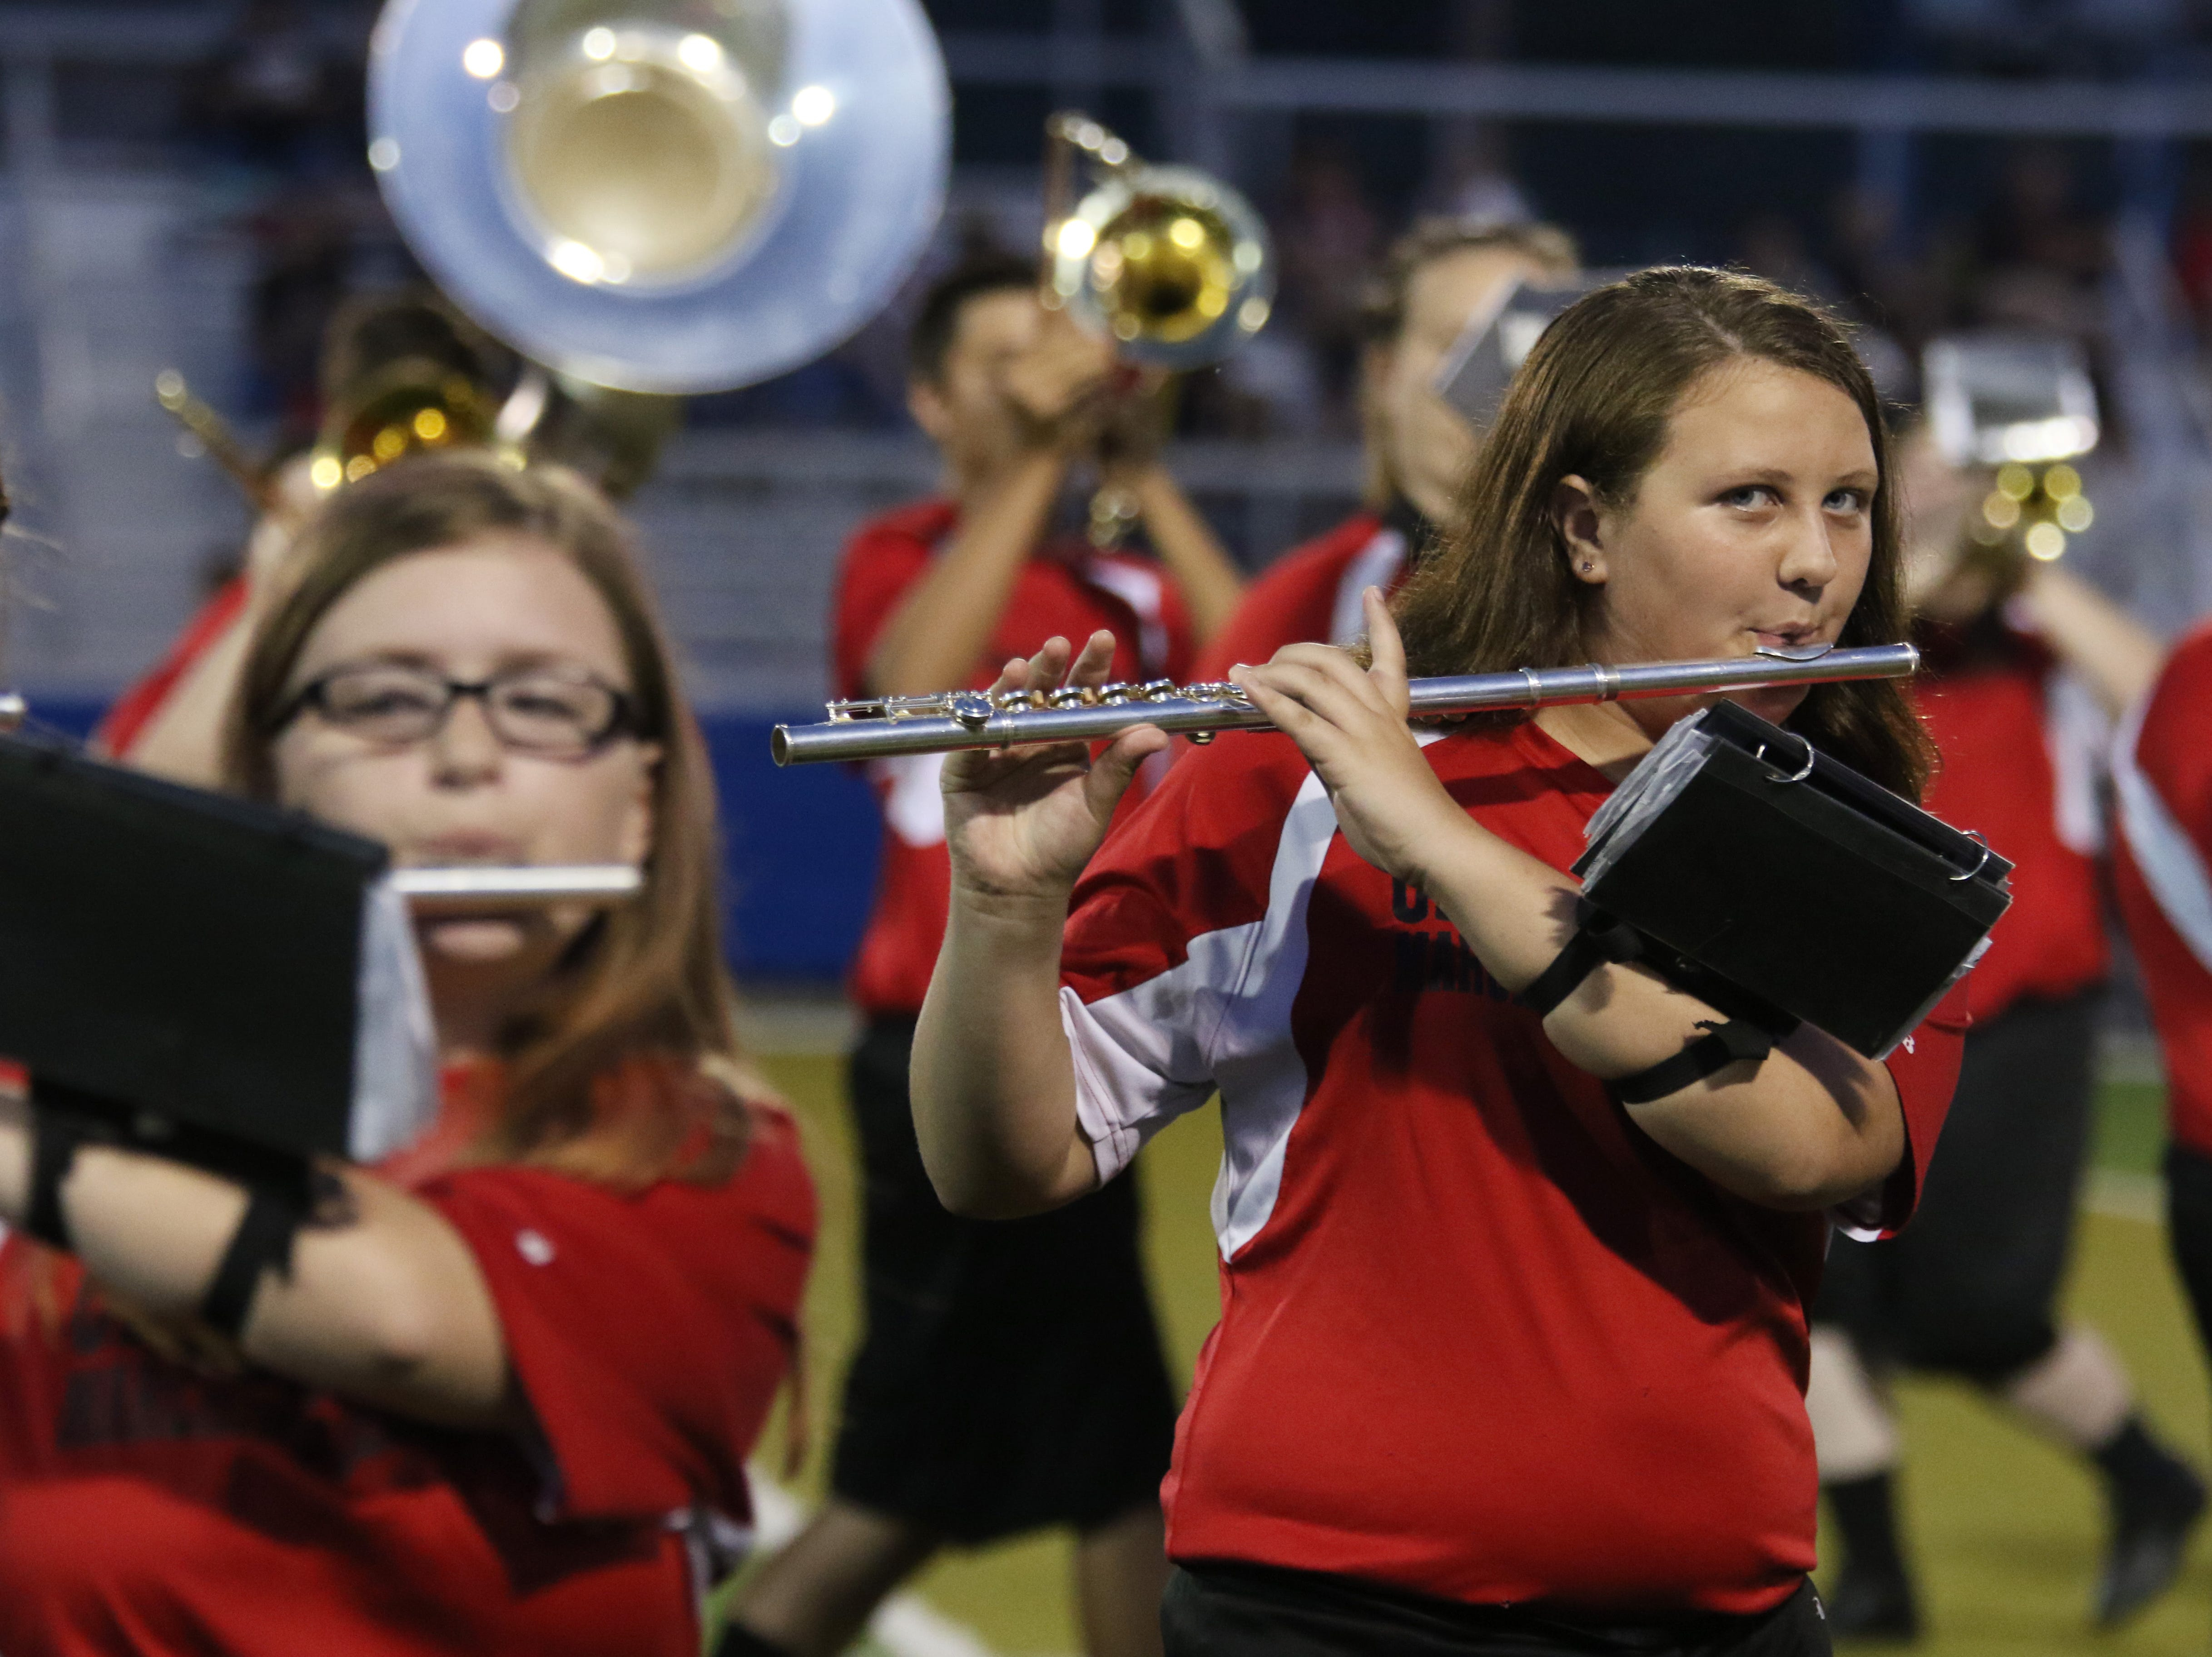 The Crooksville High School marching band performs at half time at Philo.